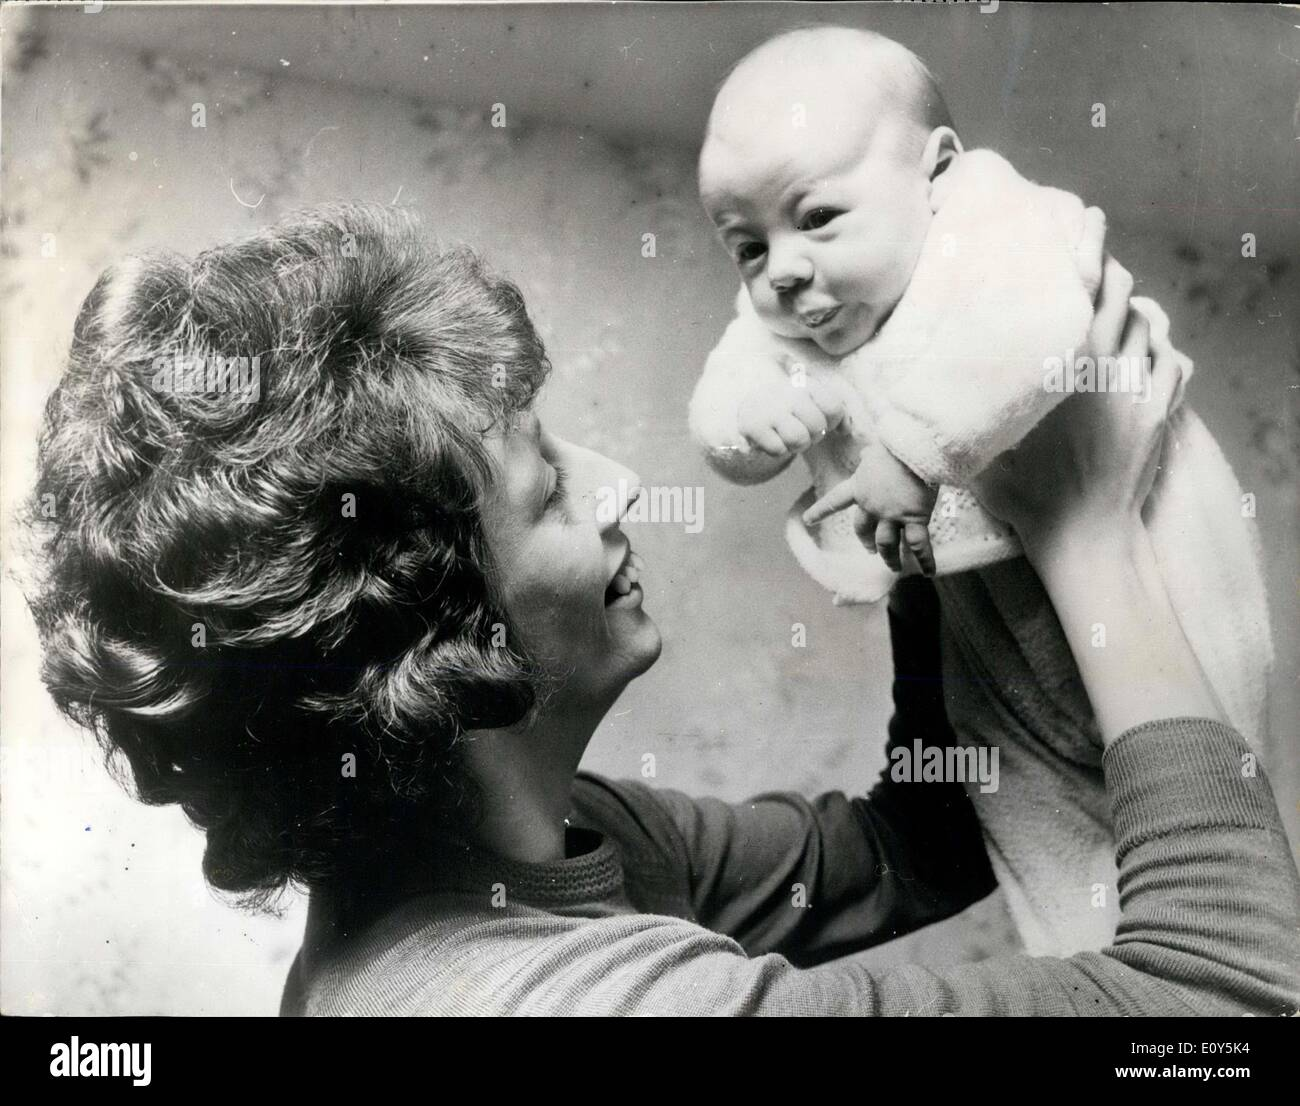 Feb. 25, 1969 - She Gambled With Her Life For A Baby: Two - months old Steven Sheard is the prise of lifetime for this mother, 28-year old Mrs. Evelyn Sheard. for when Mrs. Sheard decided to have a baby she was gambling with her own life. Three years ago Mrs. Sheard, of workington (Cumberland) had the artic valve in her heart replaced in a serious operation at the Hammer smith Hospital in London. ''After the operation surgeons pointed out the grave risk I would be talking i I had any children, partly because of the drugs I have to take said Mrs. Sheard - Stock Image